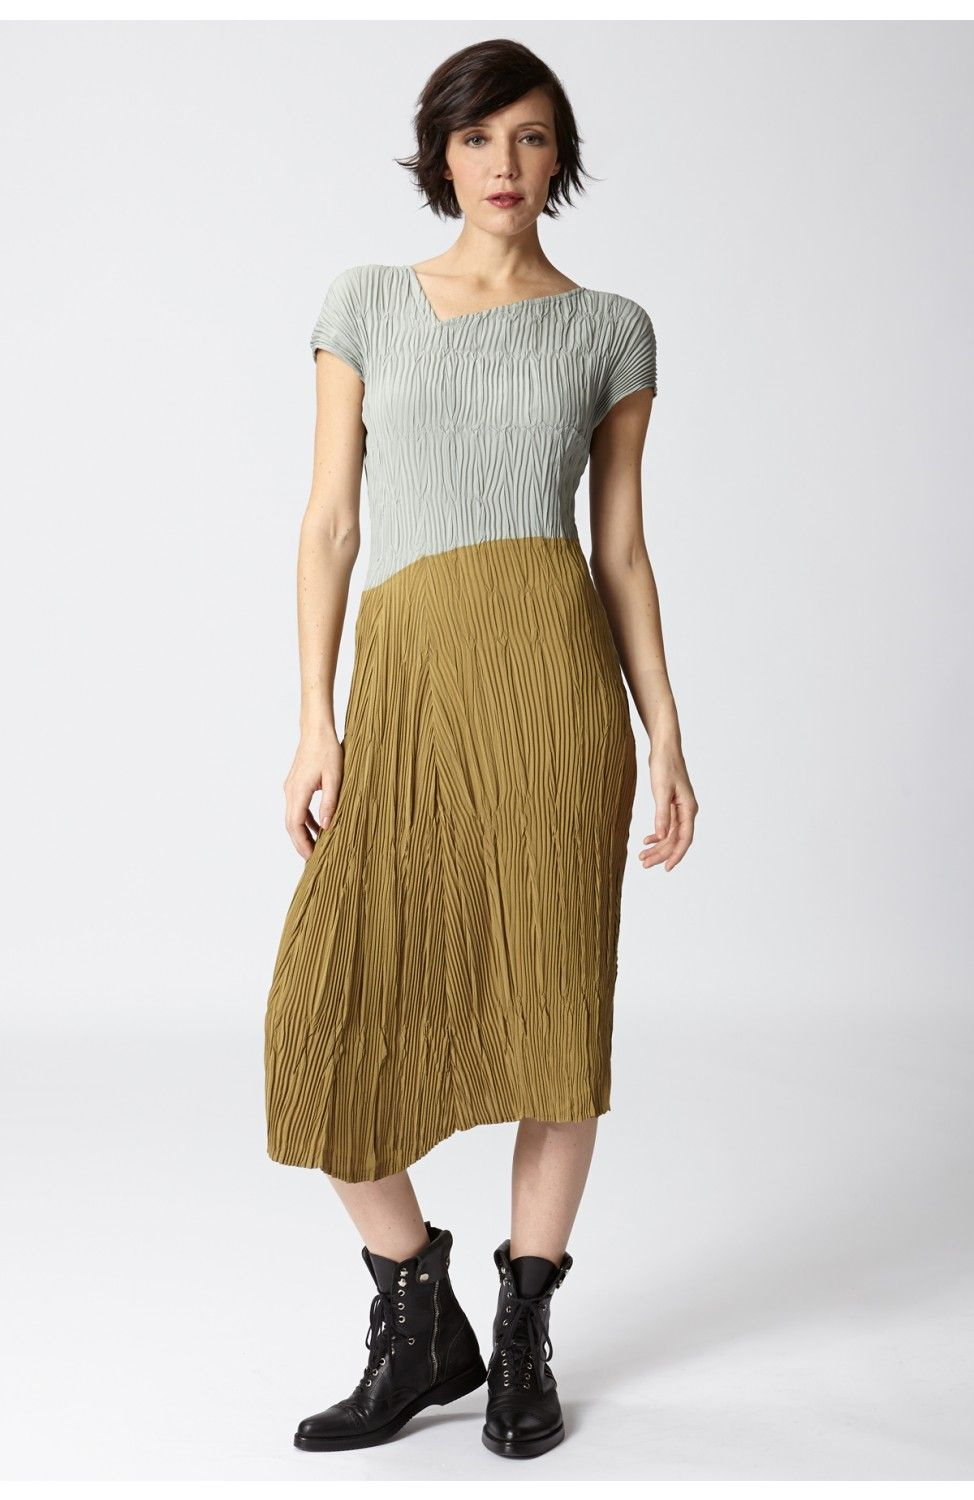 Color block dress in sage and dark mustard at babette